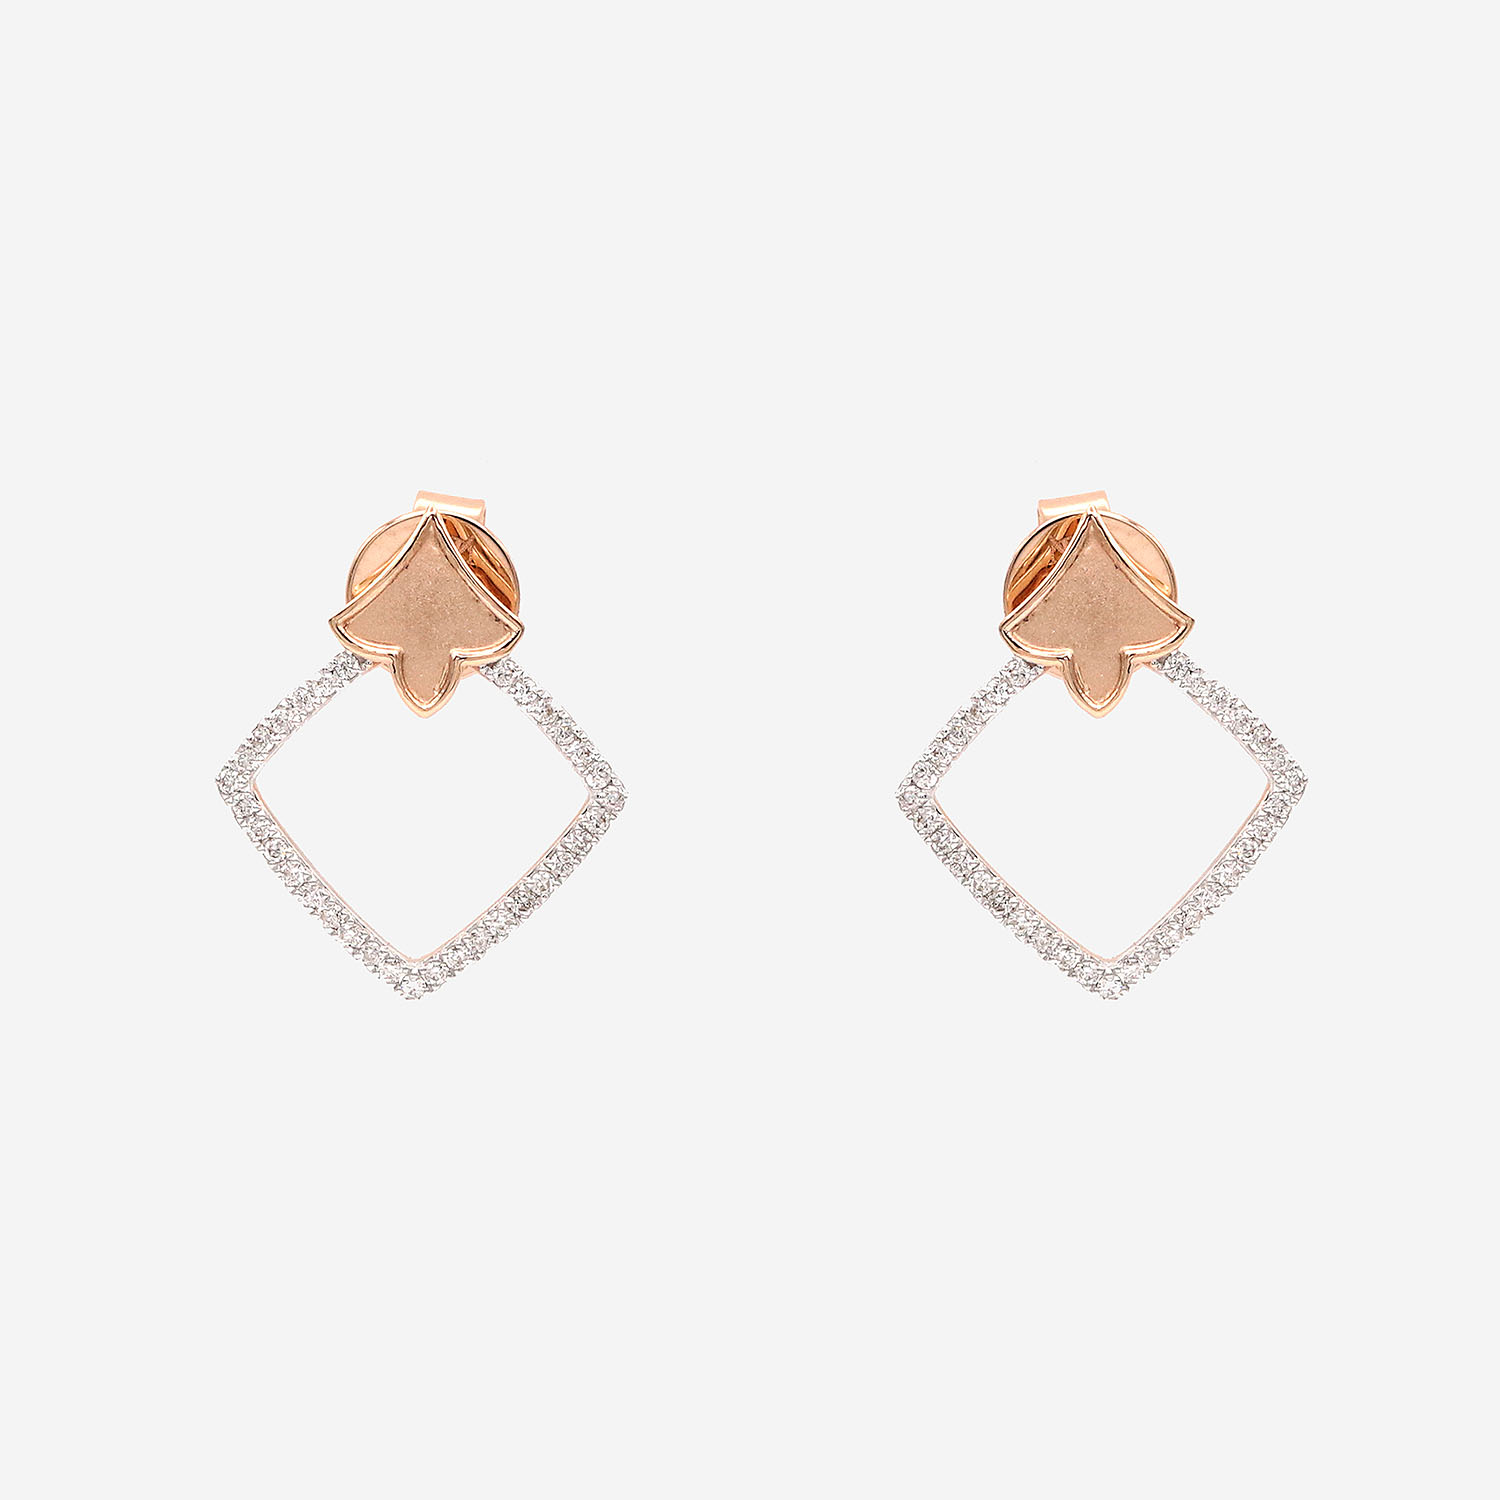 Parisienne Earrings by Amira Karaouli on curated-crowd.com